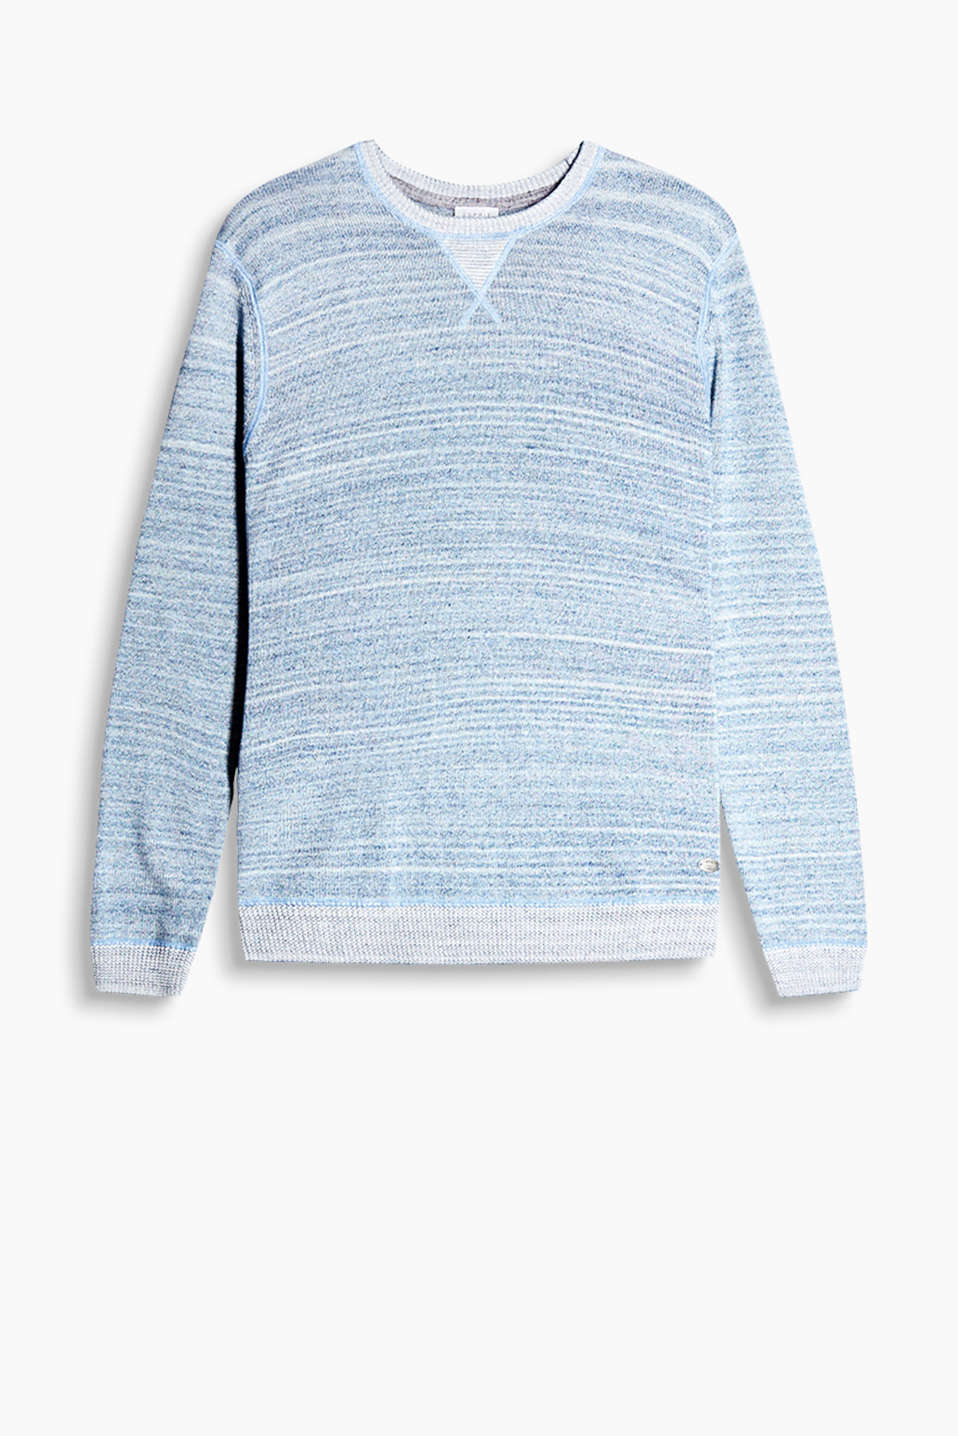 Space-dyed melange jumper in pure cotton